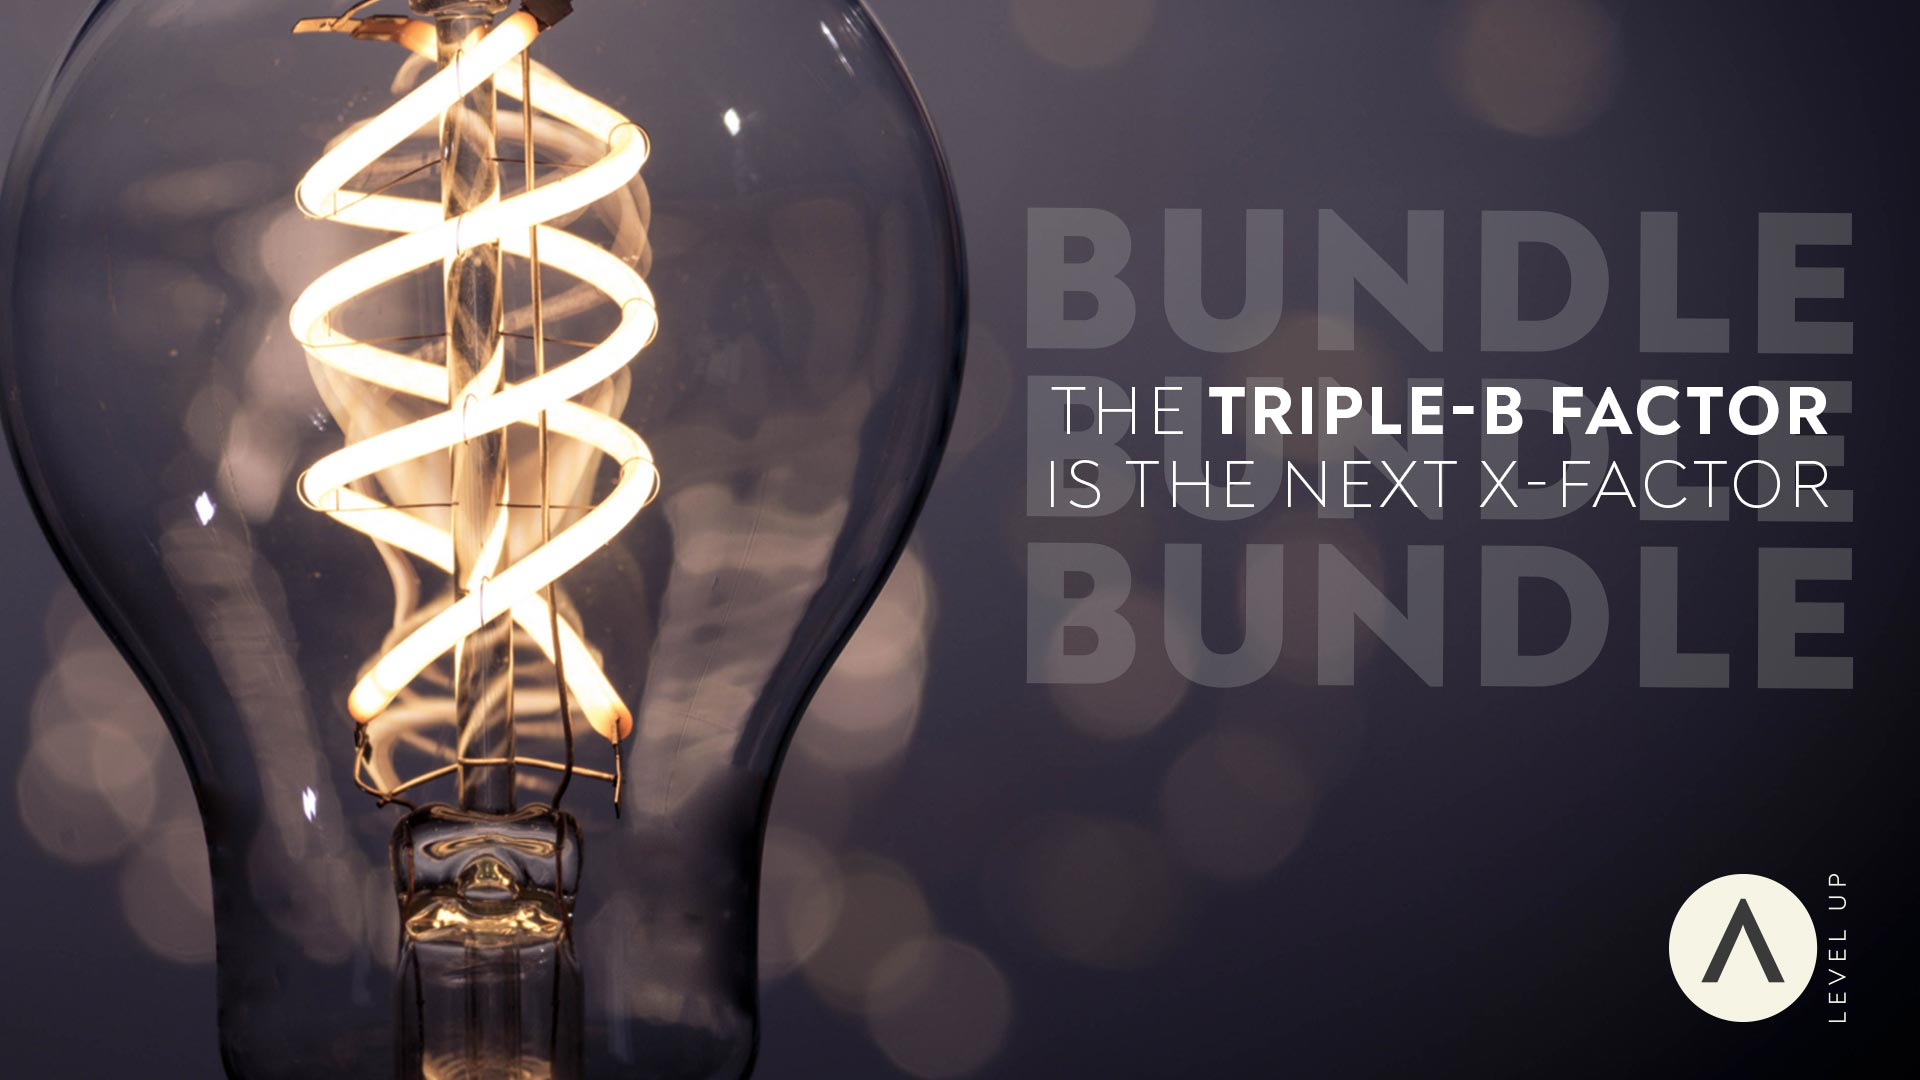 Bundling is Better for your Business